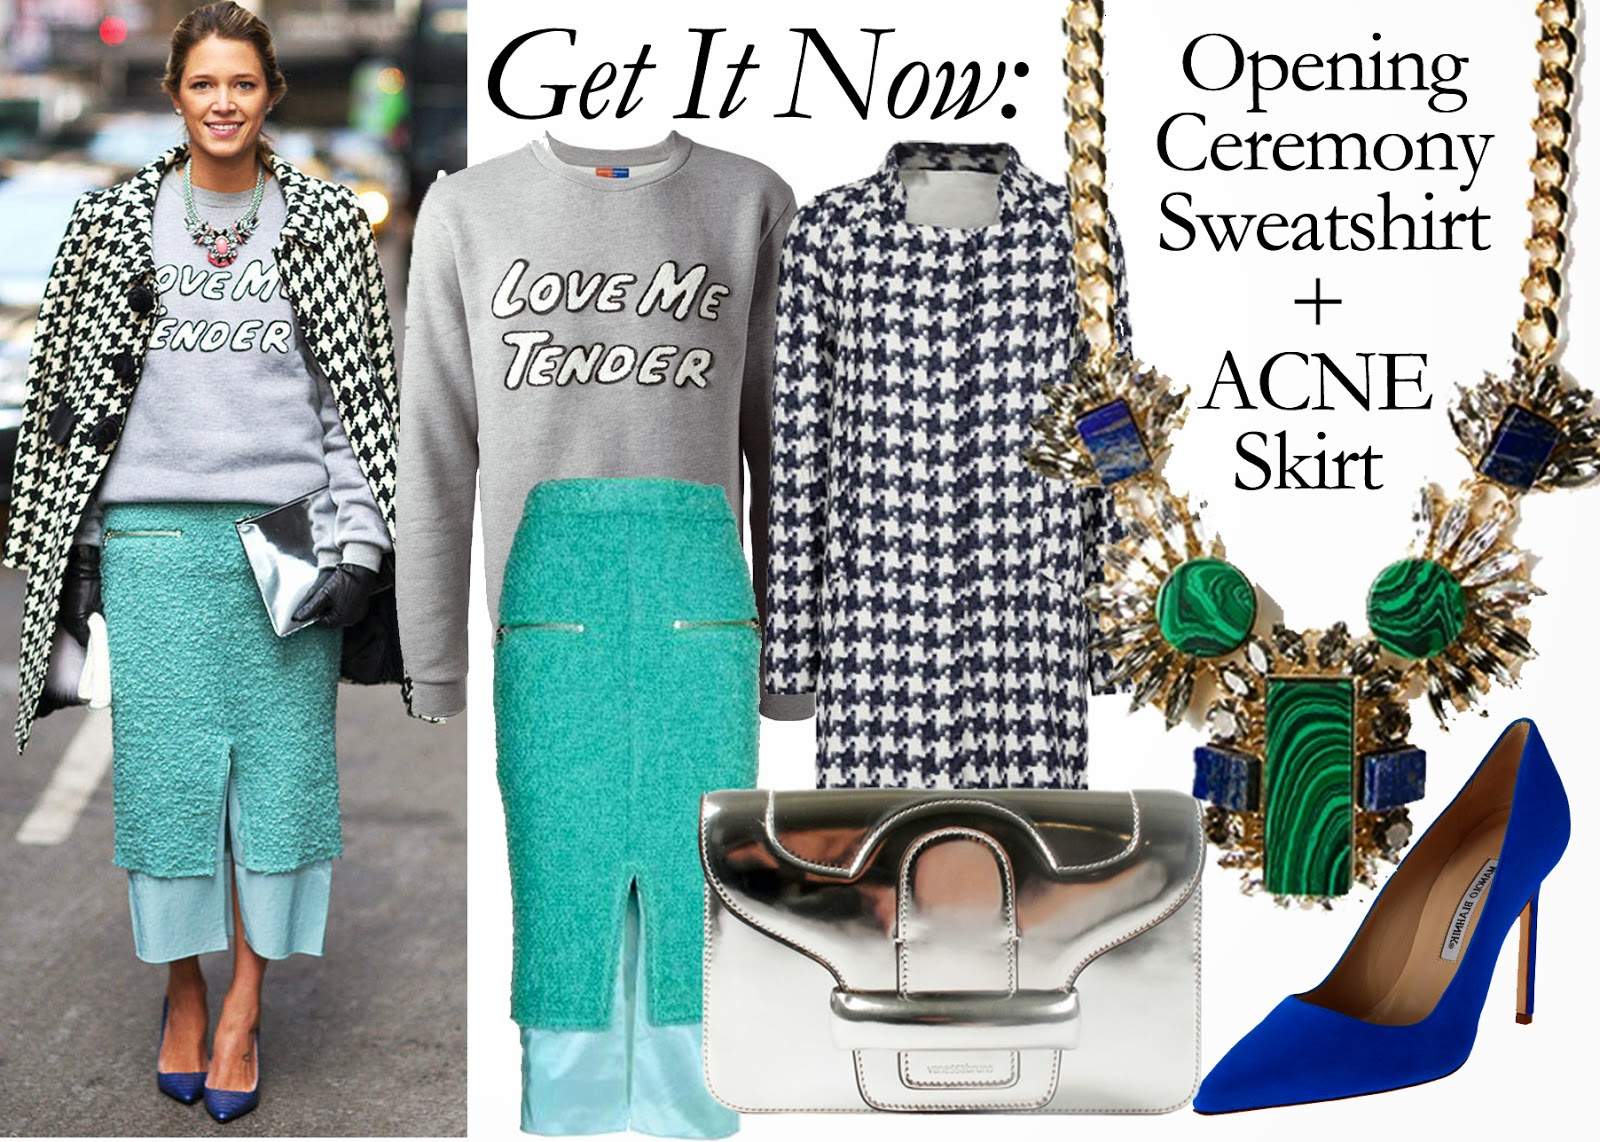 Get It Now: Opening Ceremony Love Me Tender Sweatshirt + ACNE Form Boucle skirt